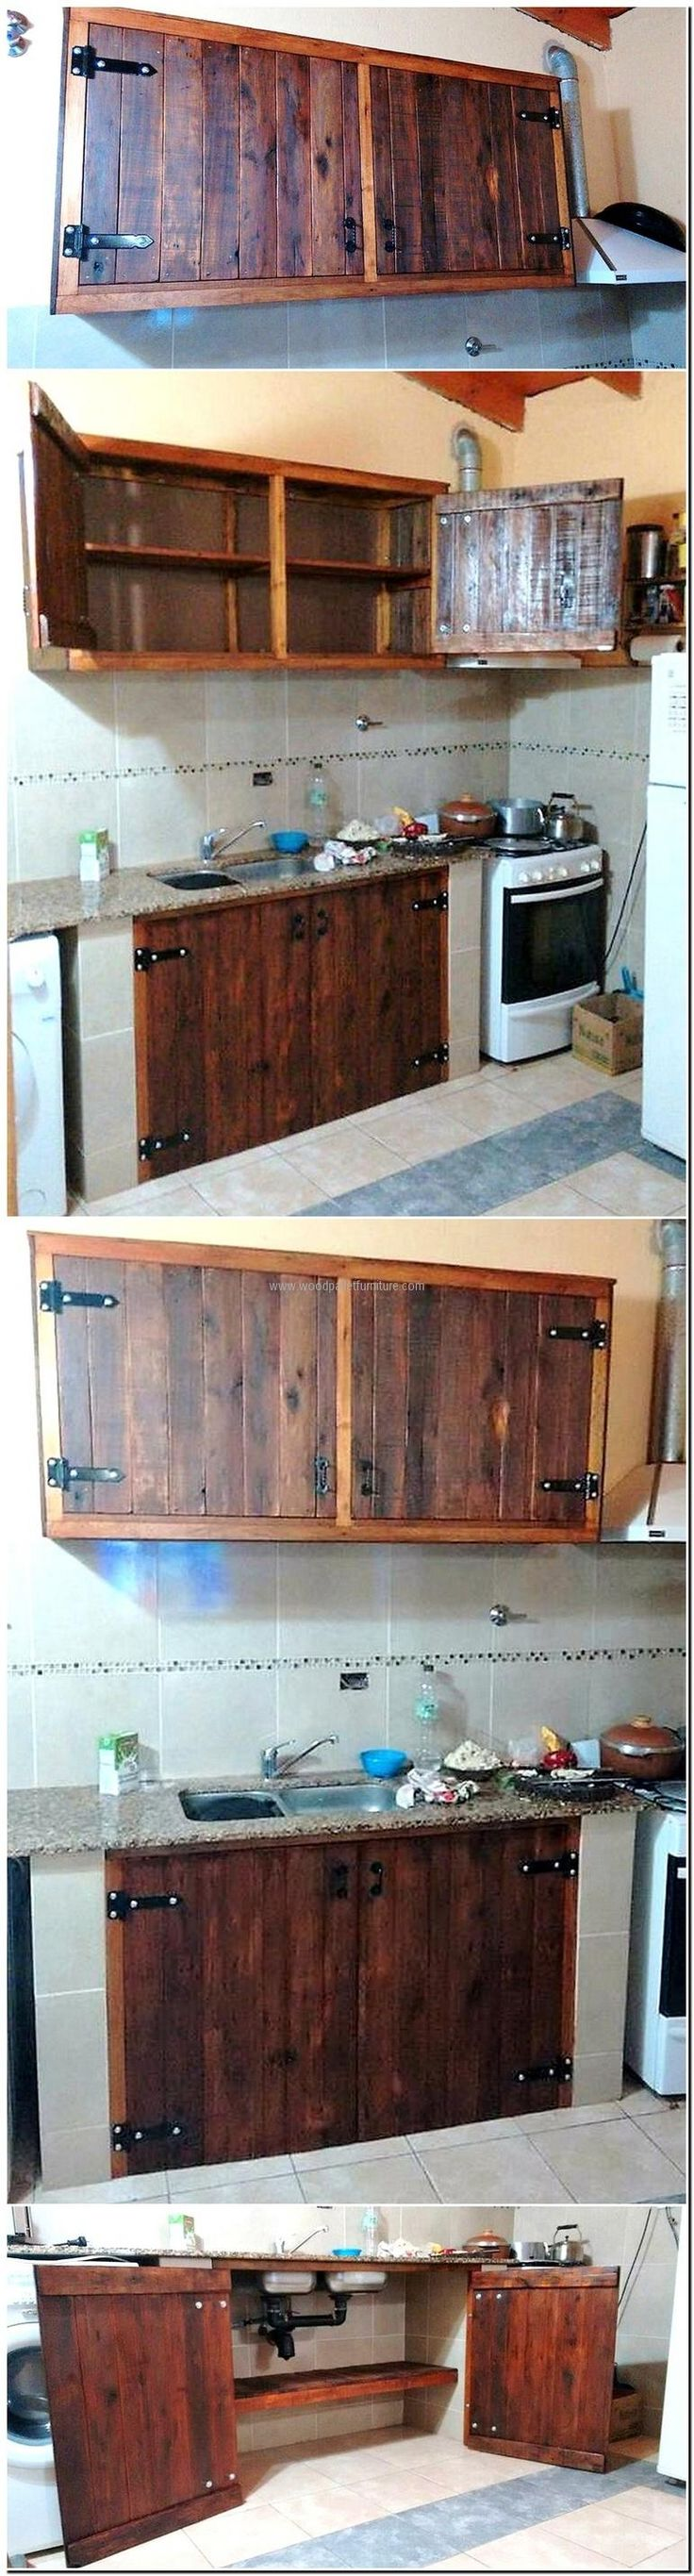 Now here we are with the idea of rustic pallet cabinets for the kitchen, the bottles can be organized in it and the kitchen utensil can also be placed.